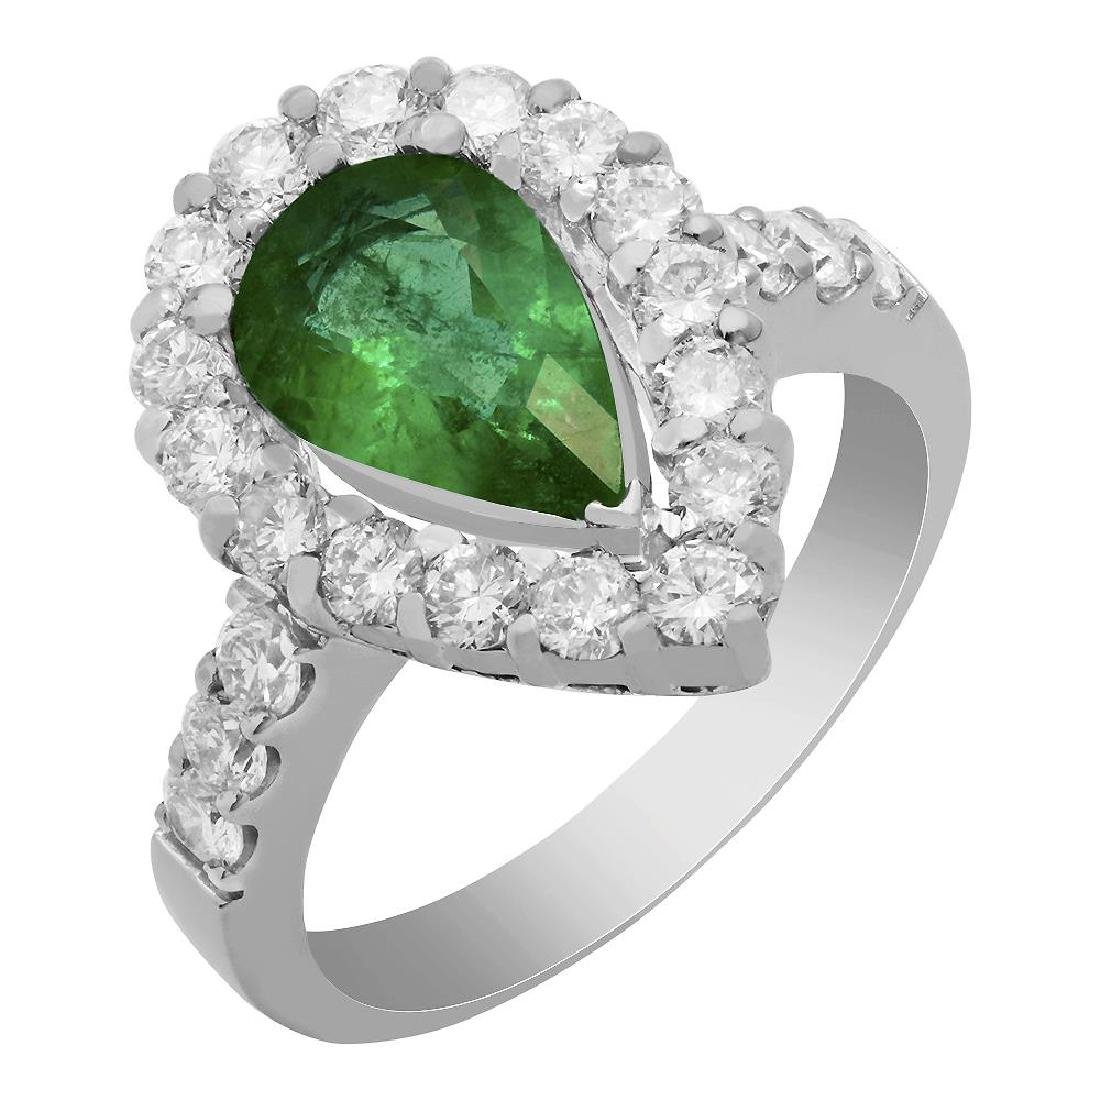 14k White Gold 1.35ct Emerald 1.22ct Diamond Ring